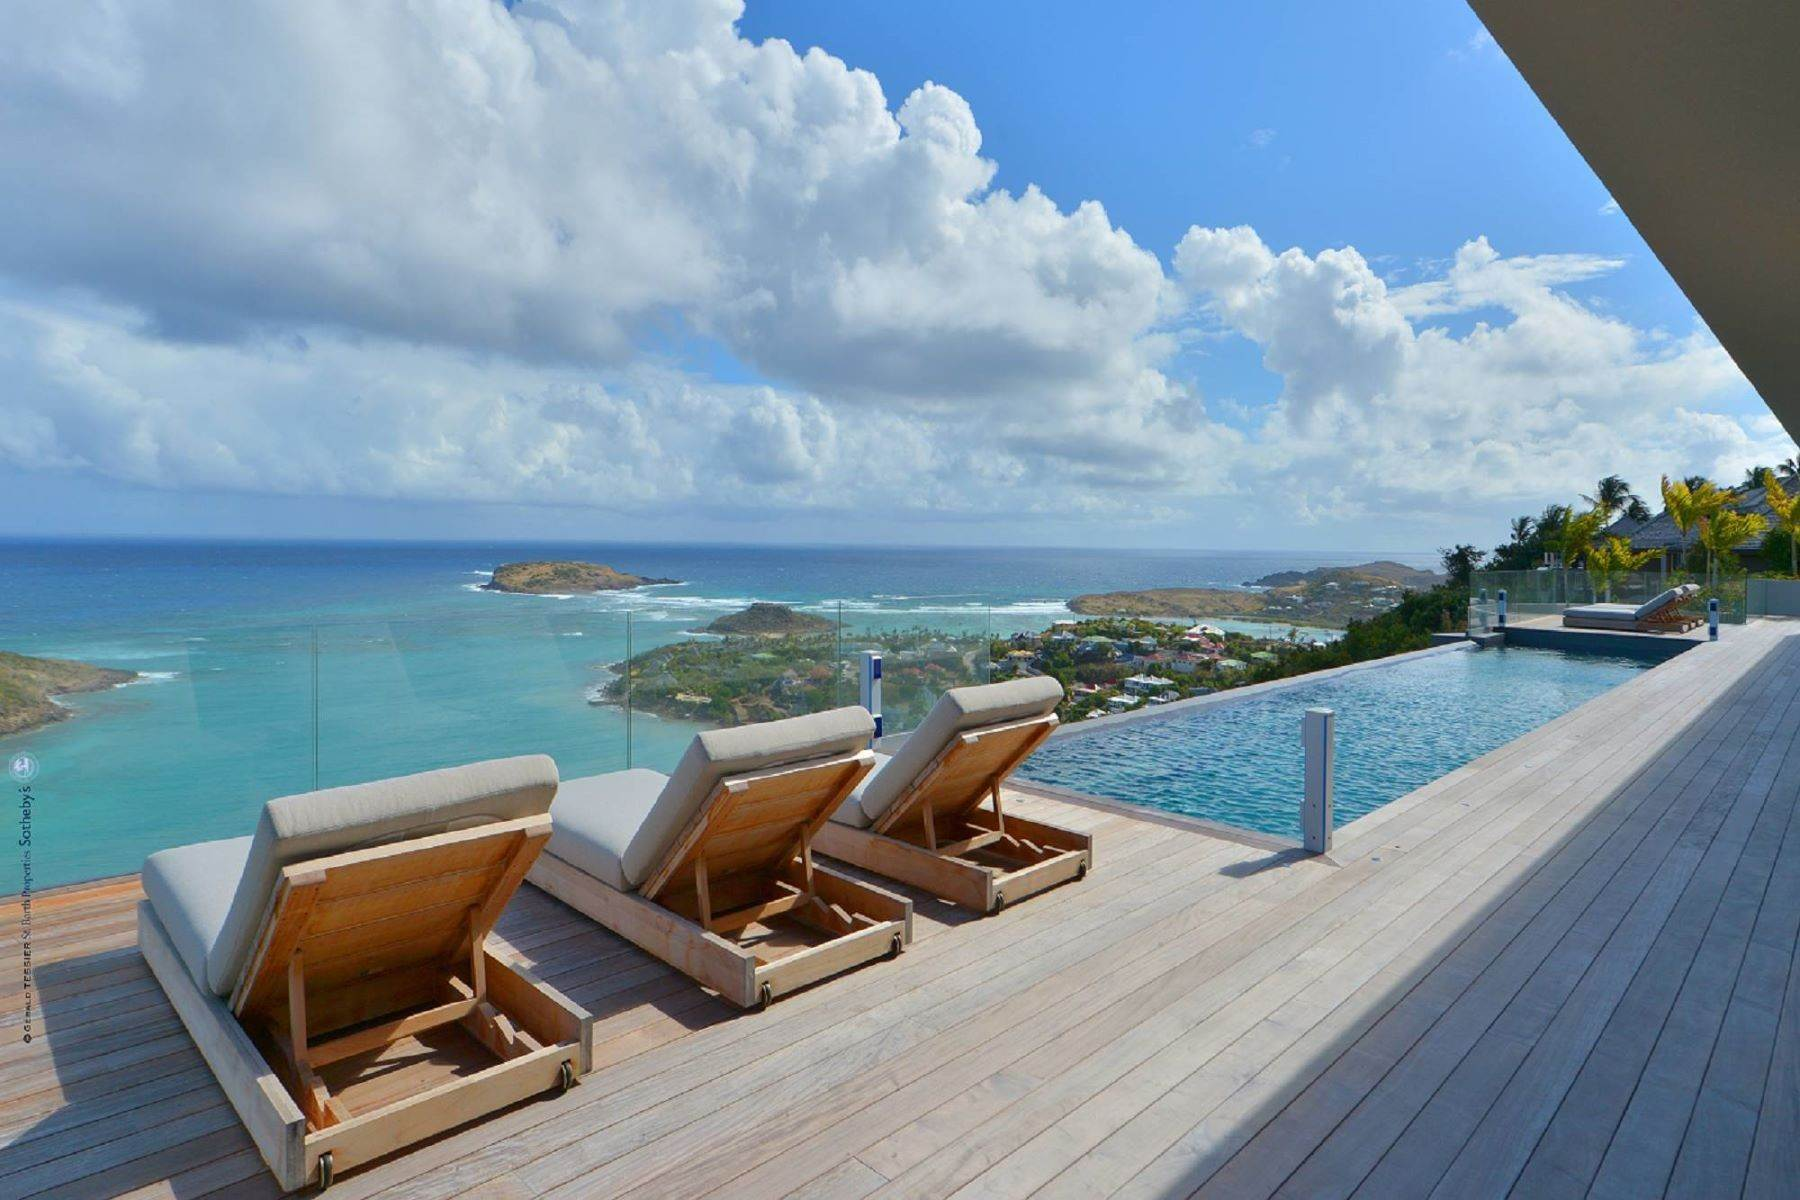 Property for Sale at Villa Romane Other St. Barthelemy, Cities In St. Barthelemy St. Barthelemy